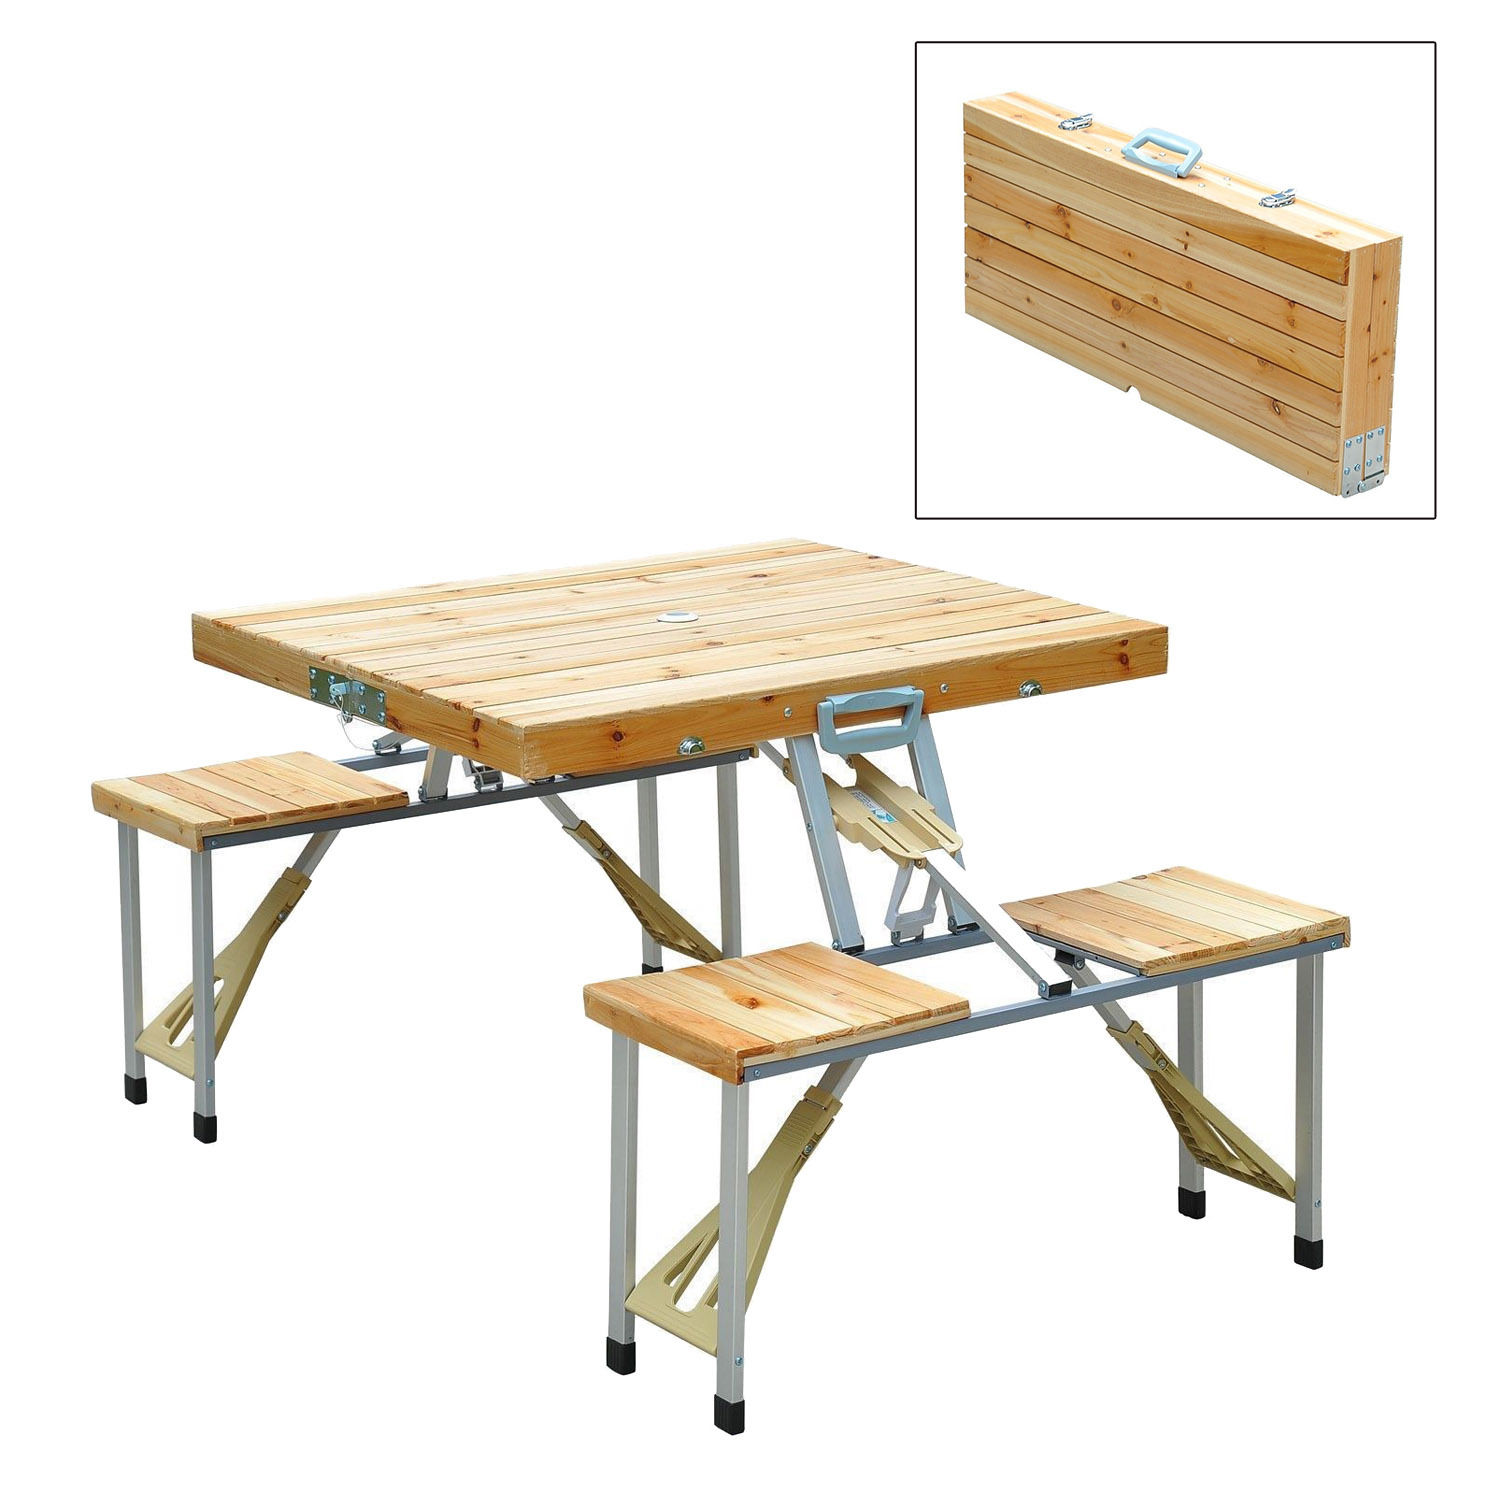 Wooden Camping Picnic Table Bench Seat Outdoor Portable Folding ...